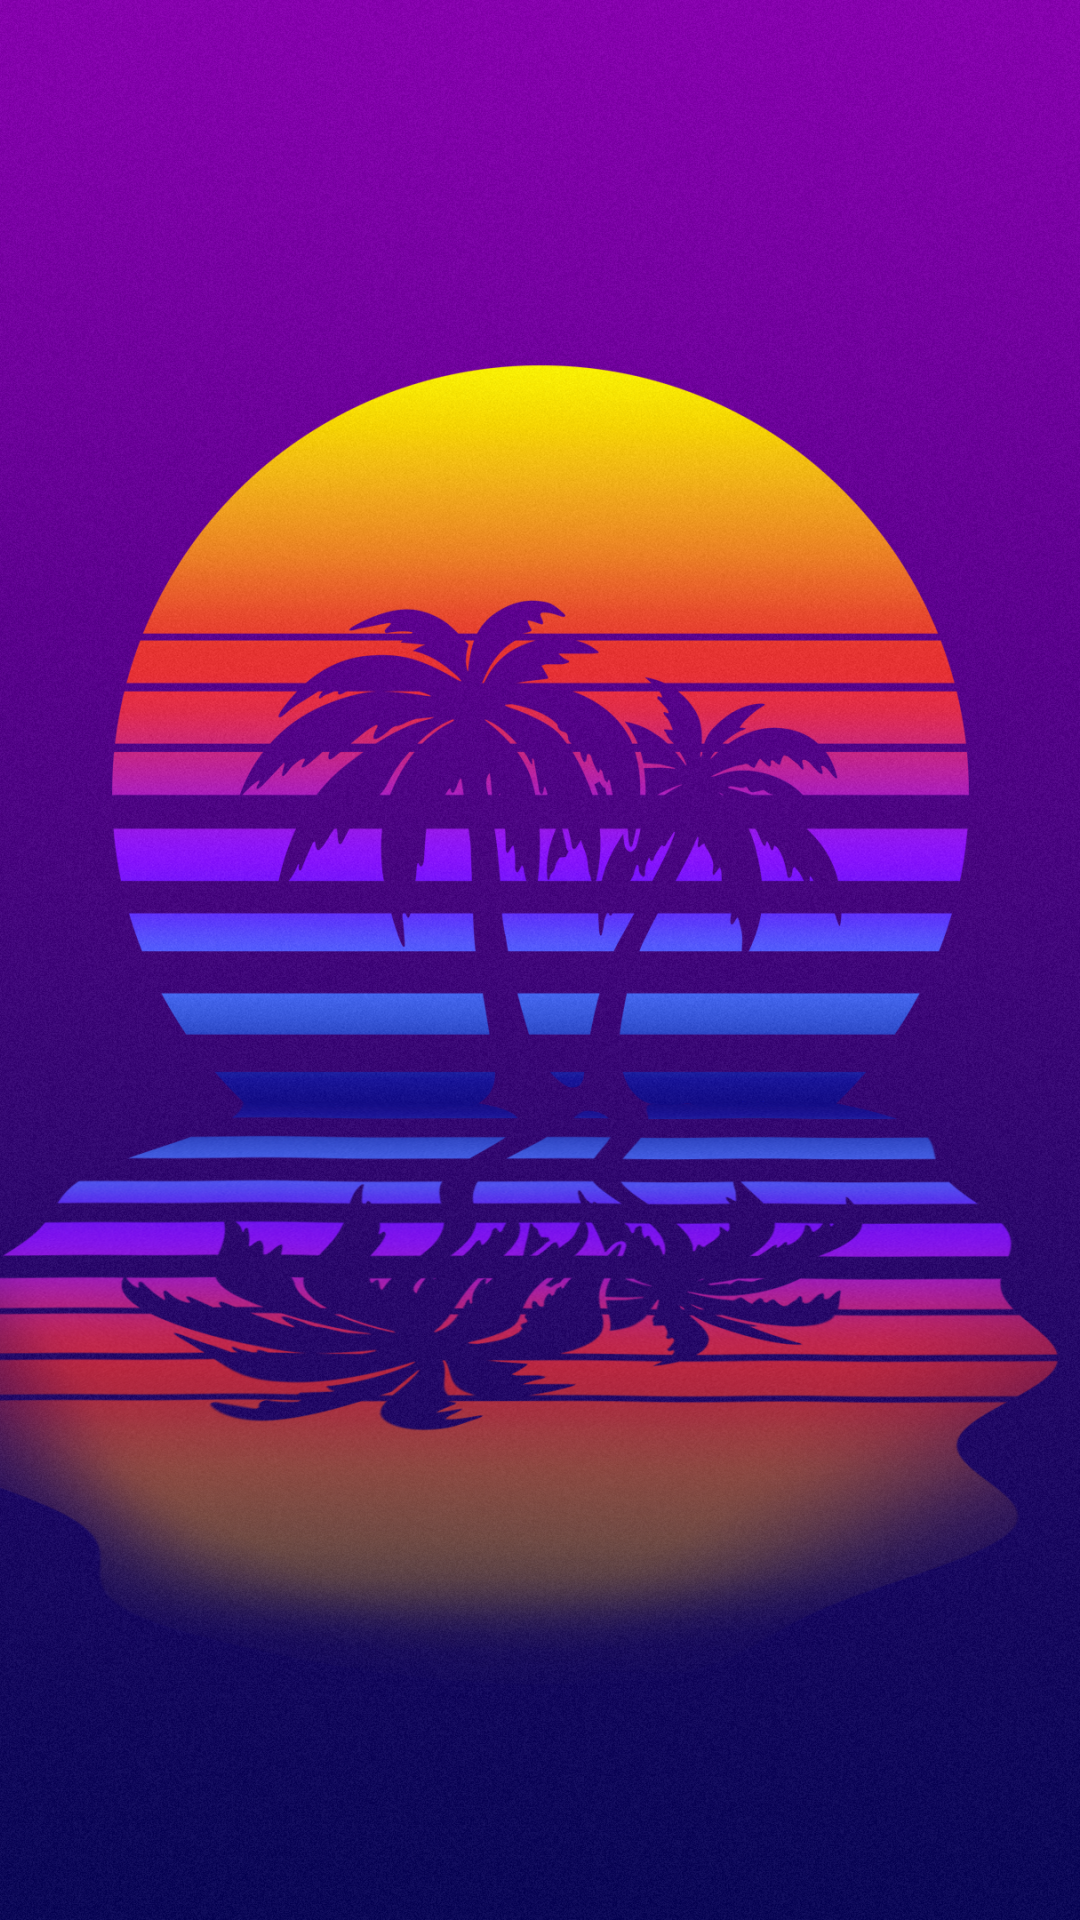 Purple Palm Tree Wallpaper High Quality Resolution Hupages Download Iphone Wallpapers Vaporwave Wallpaper Retro Wallpaper Iphone Retro Wallpaper